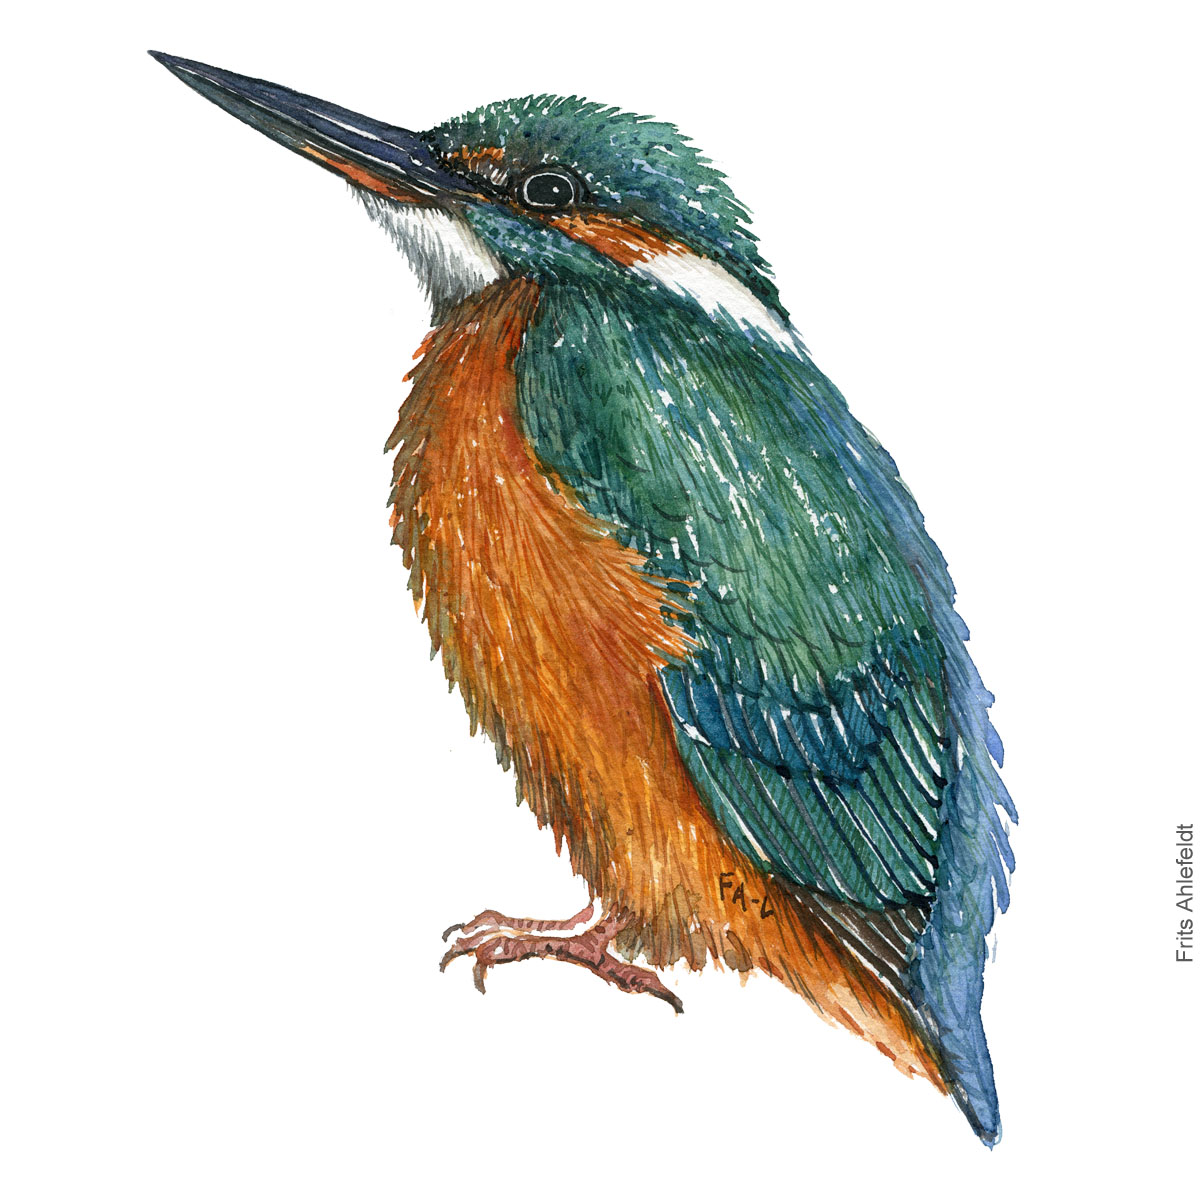 Isfugl - Kingfisher - Bird watercolor painting. Artwork by Frits Ahlefeldt. Fugle akvarel